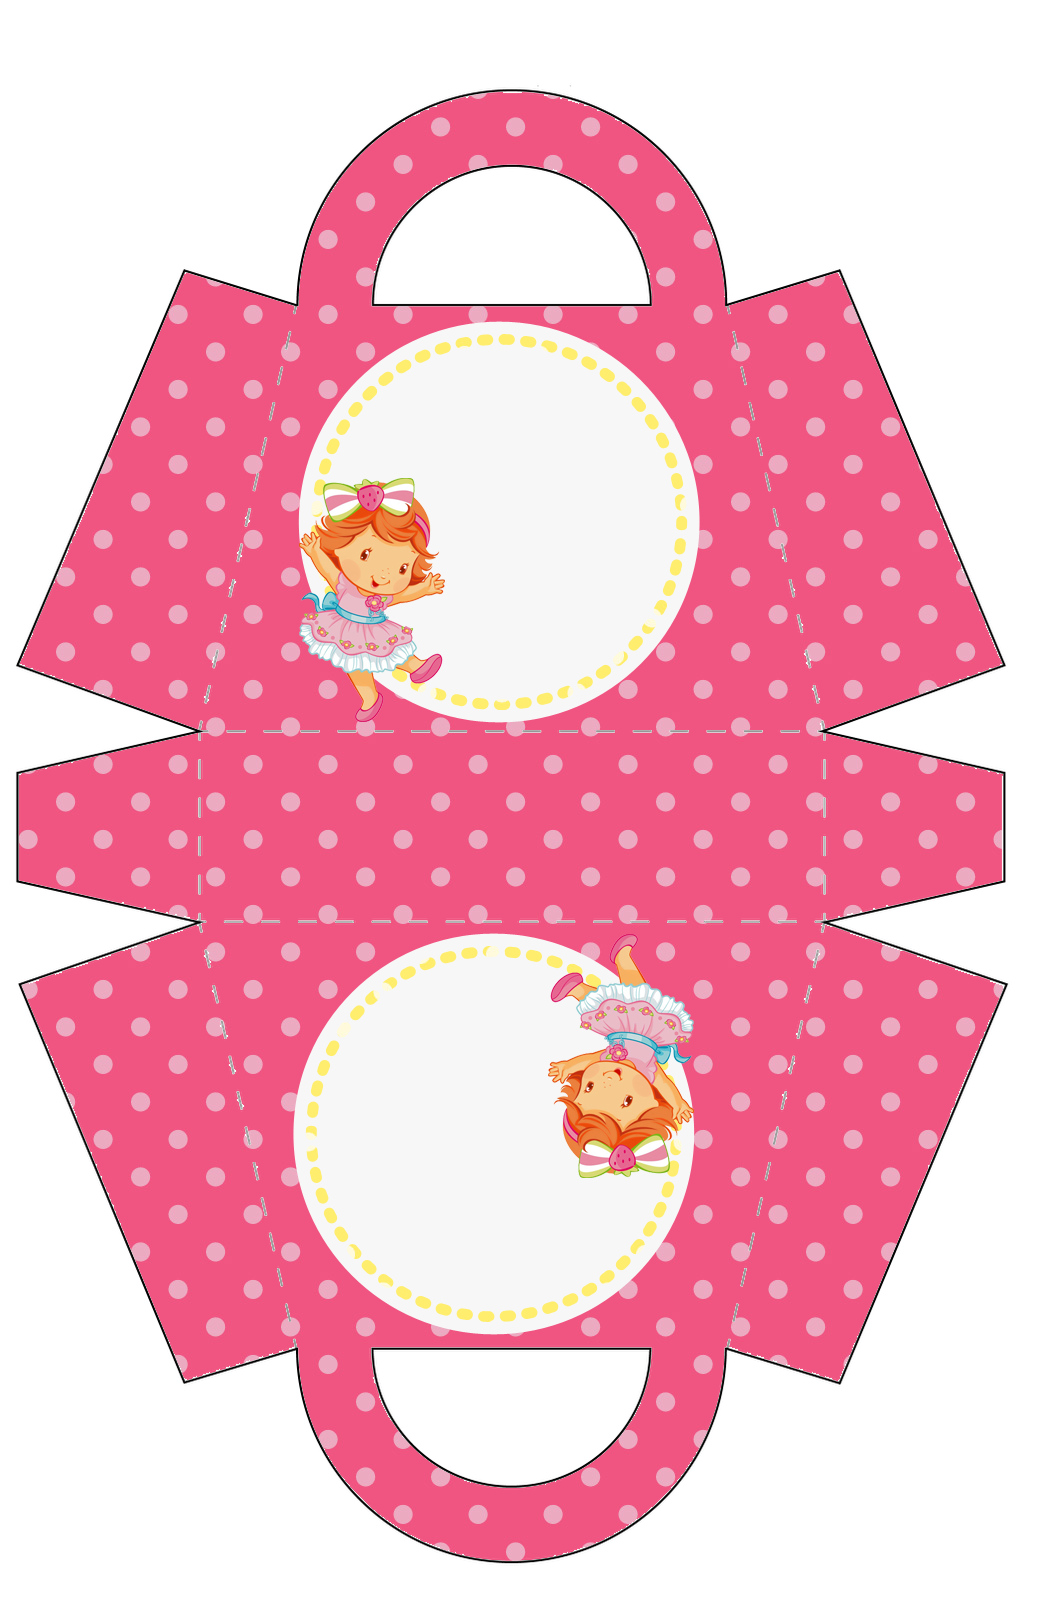 Strawberry shortcake baby free printable paper purse box strawberry shortcake baby free printable paper purse filmwisefo Gallery